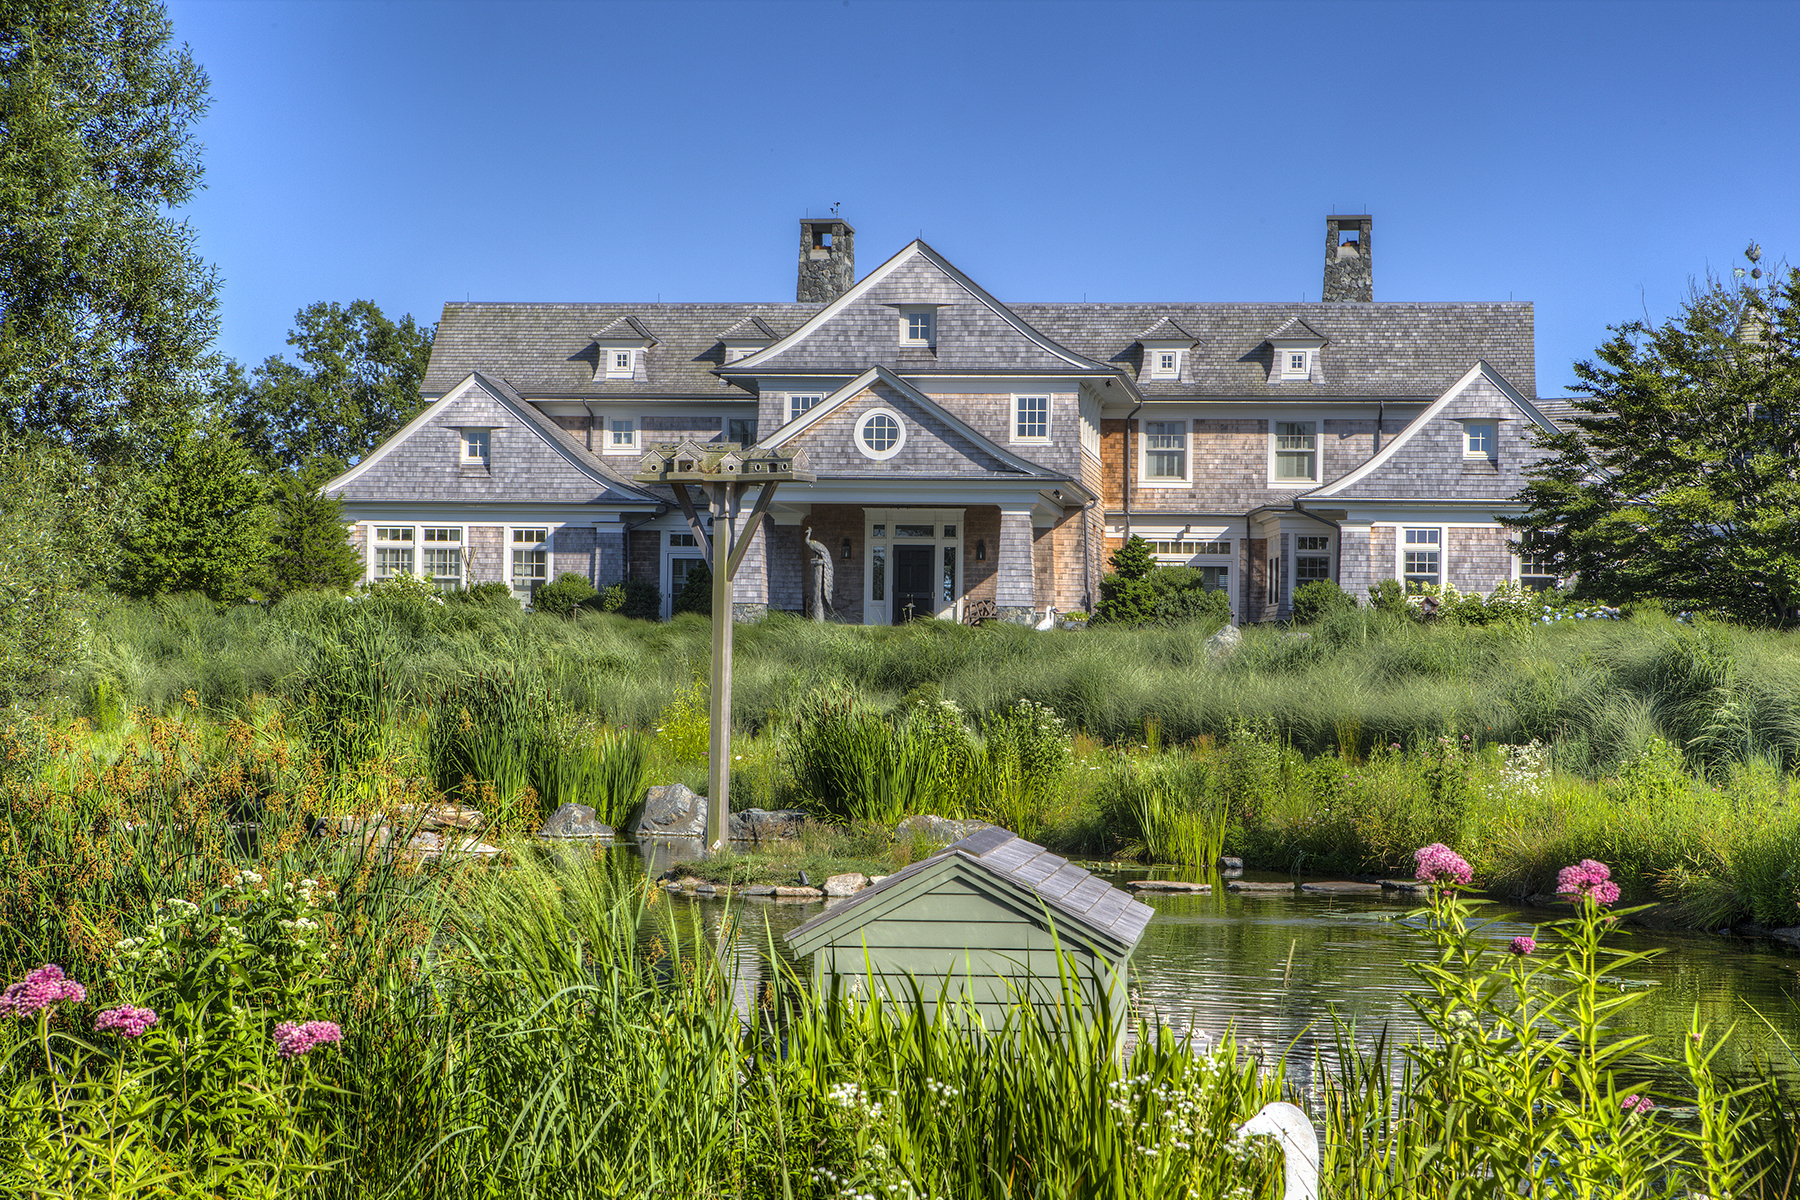 Additional photo for property listing at The Bird House 70 Beacon Hill Road Newport, Rhode Island 02840 United States